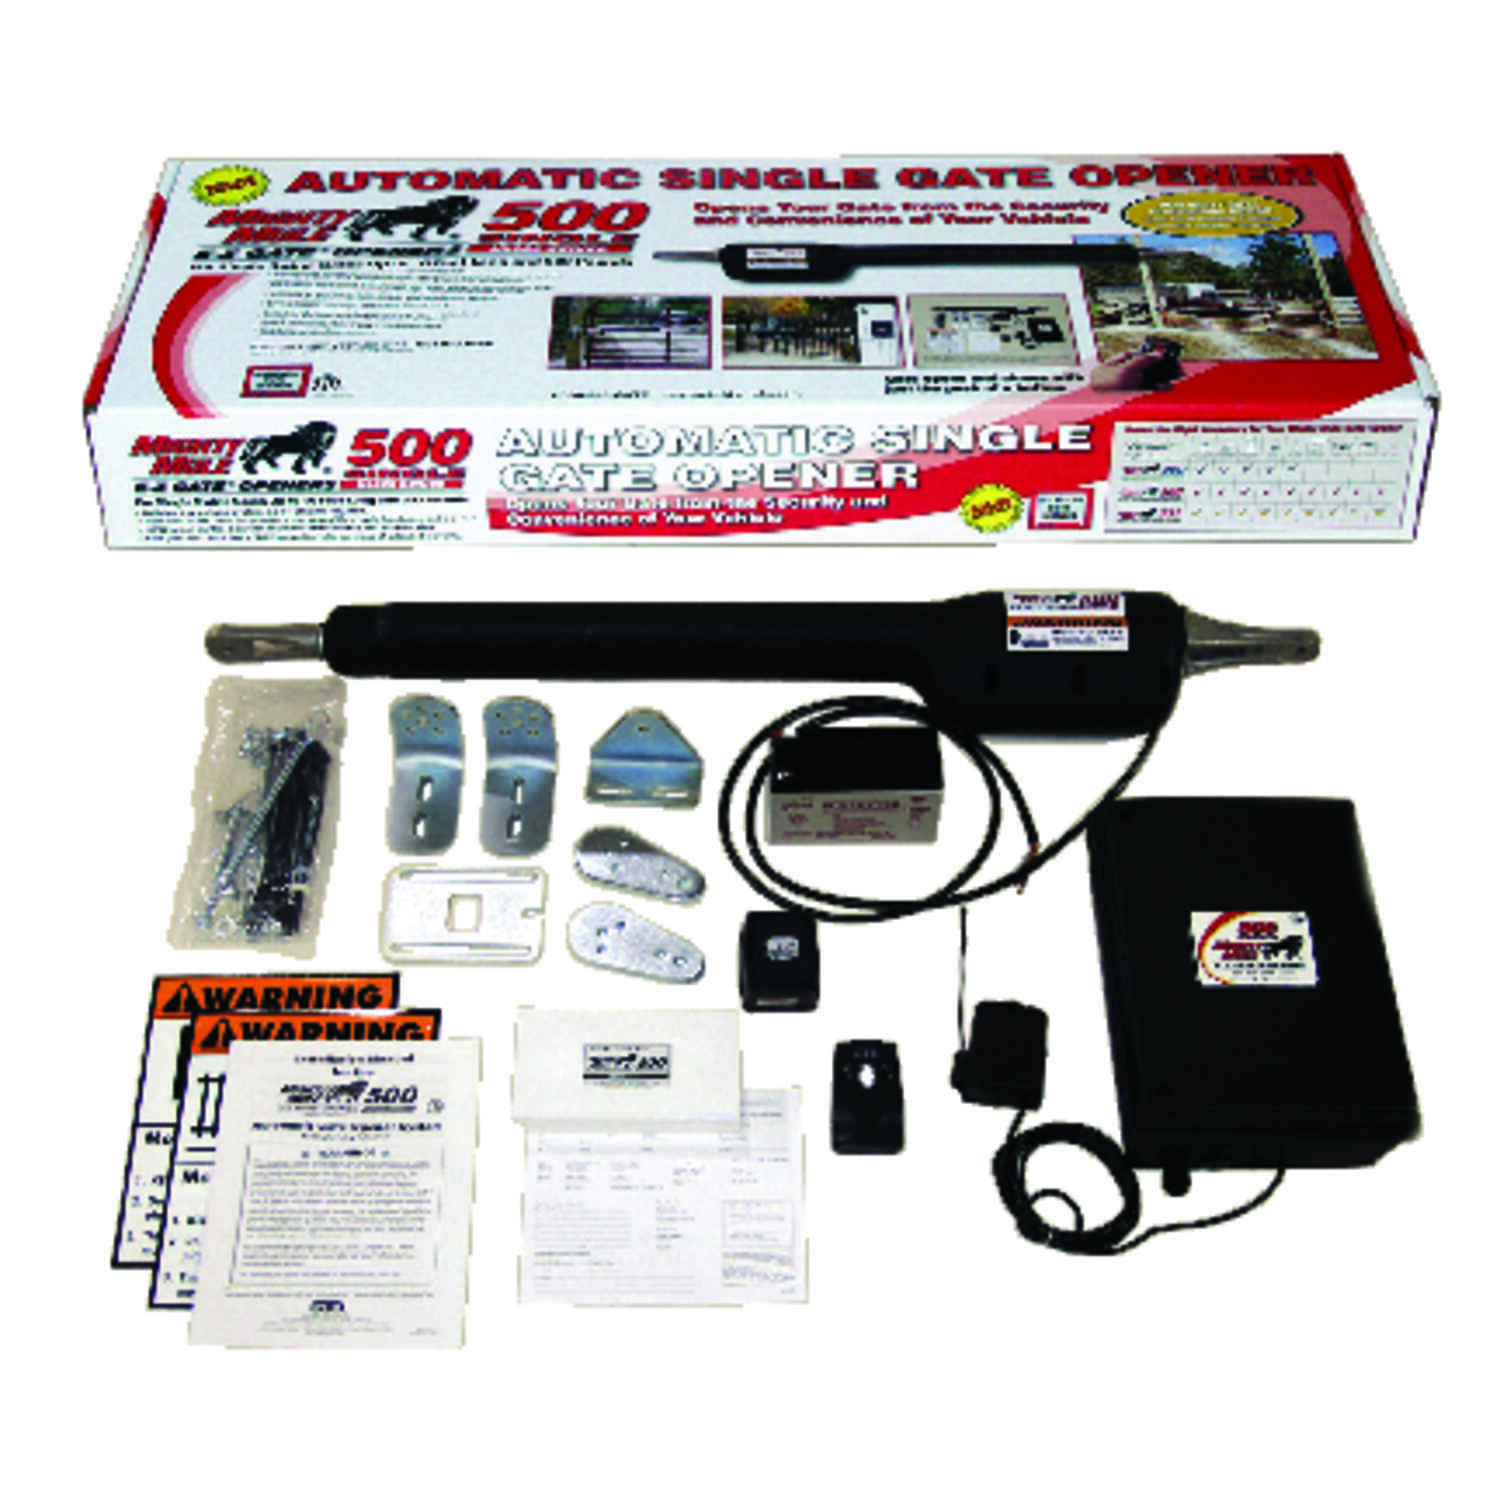 Mighty Mule  12 volt AC/Battery Powered  Automatic Gate Opener